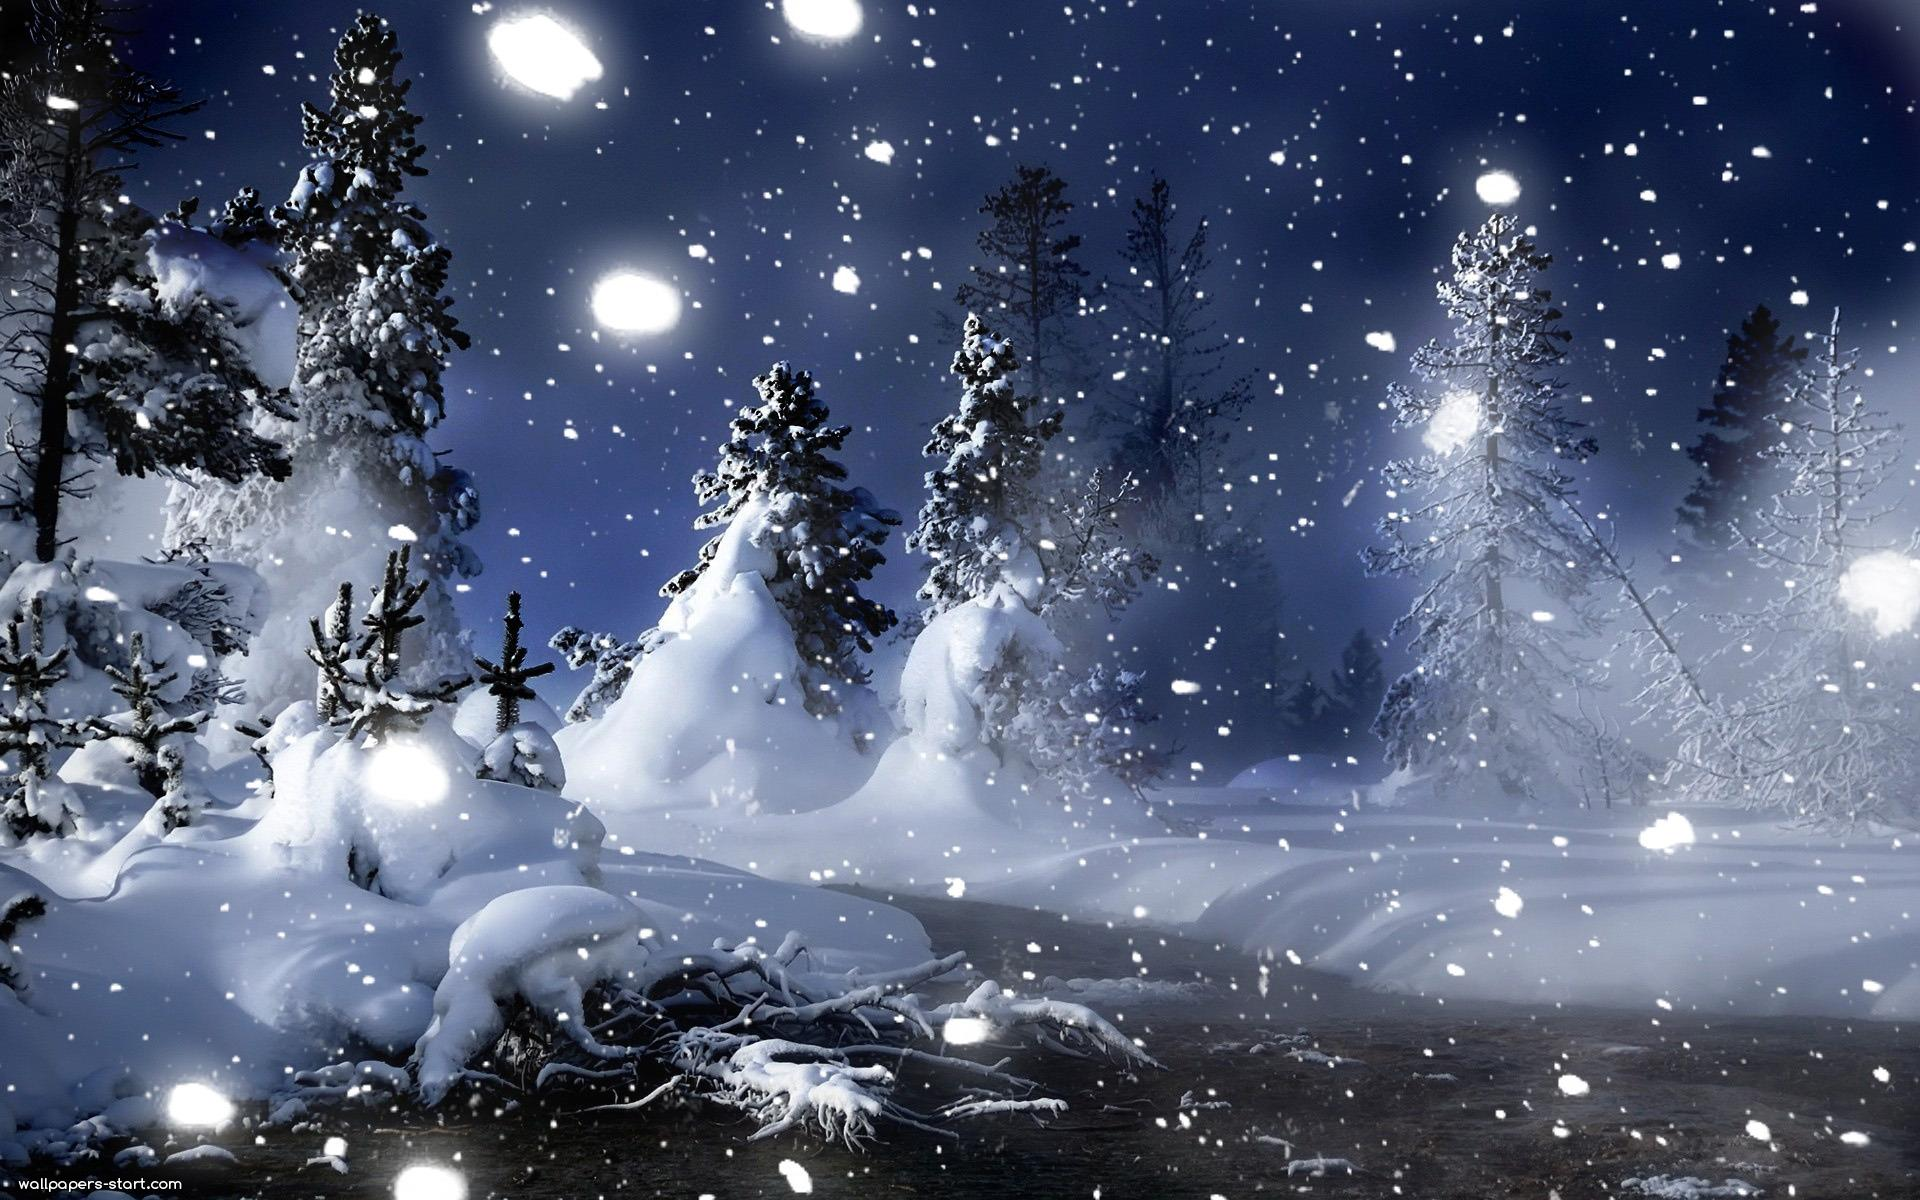 Wallpapers For > Romantic Winter Night Wallpapers